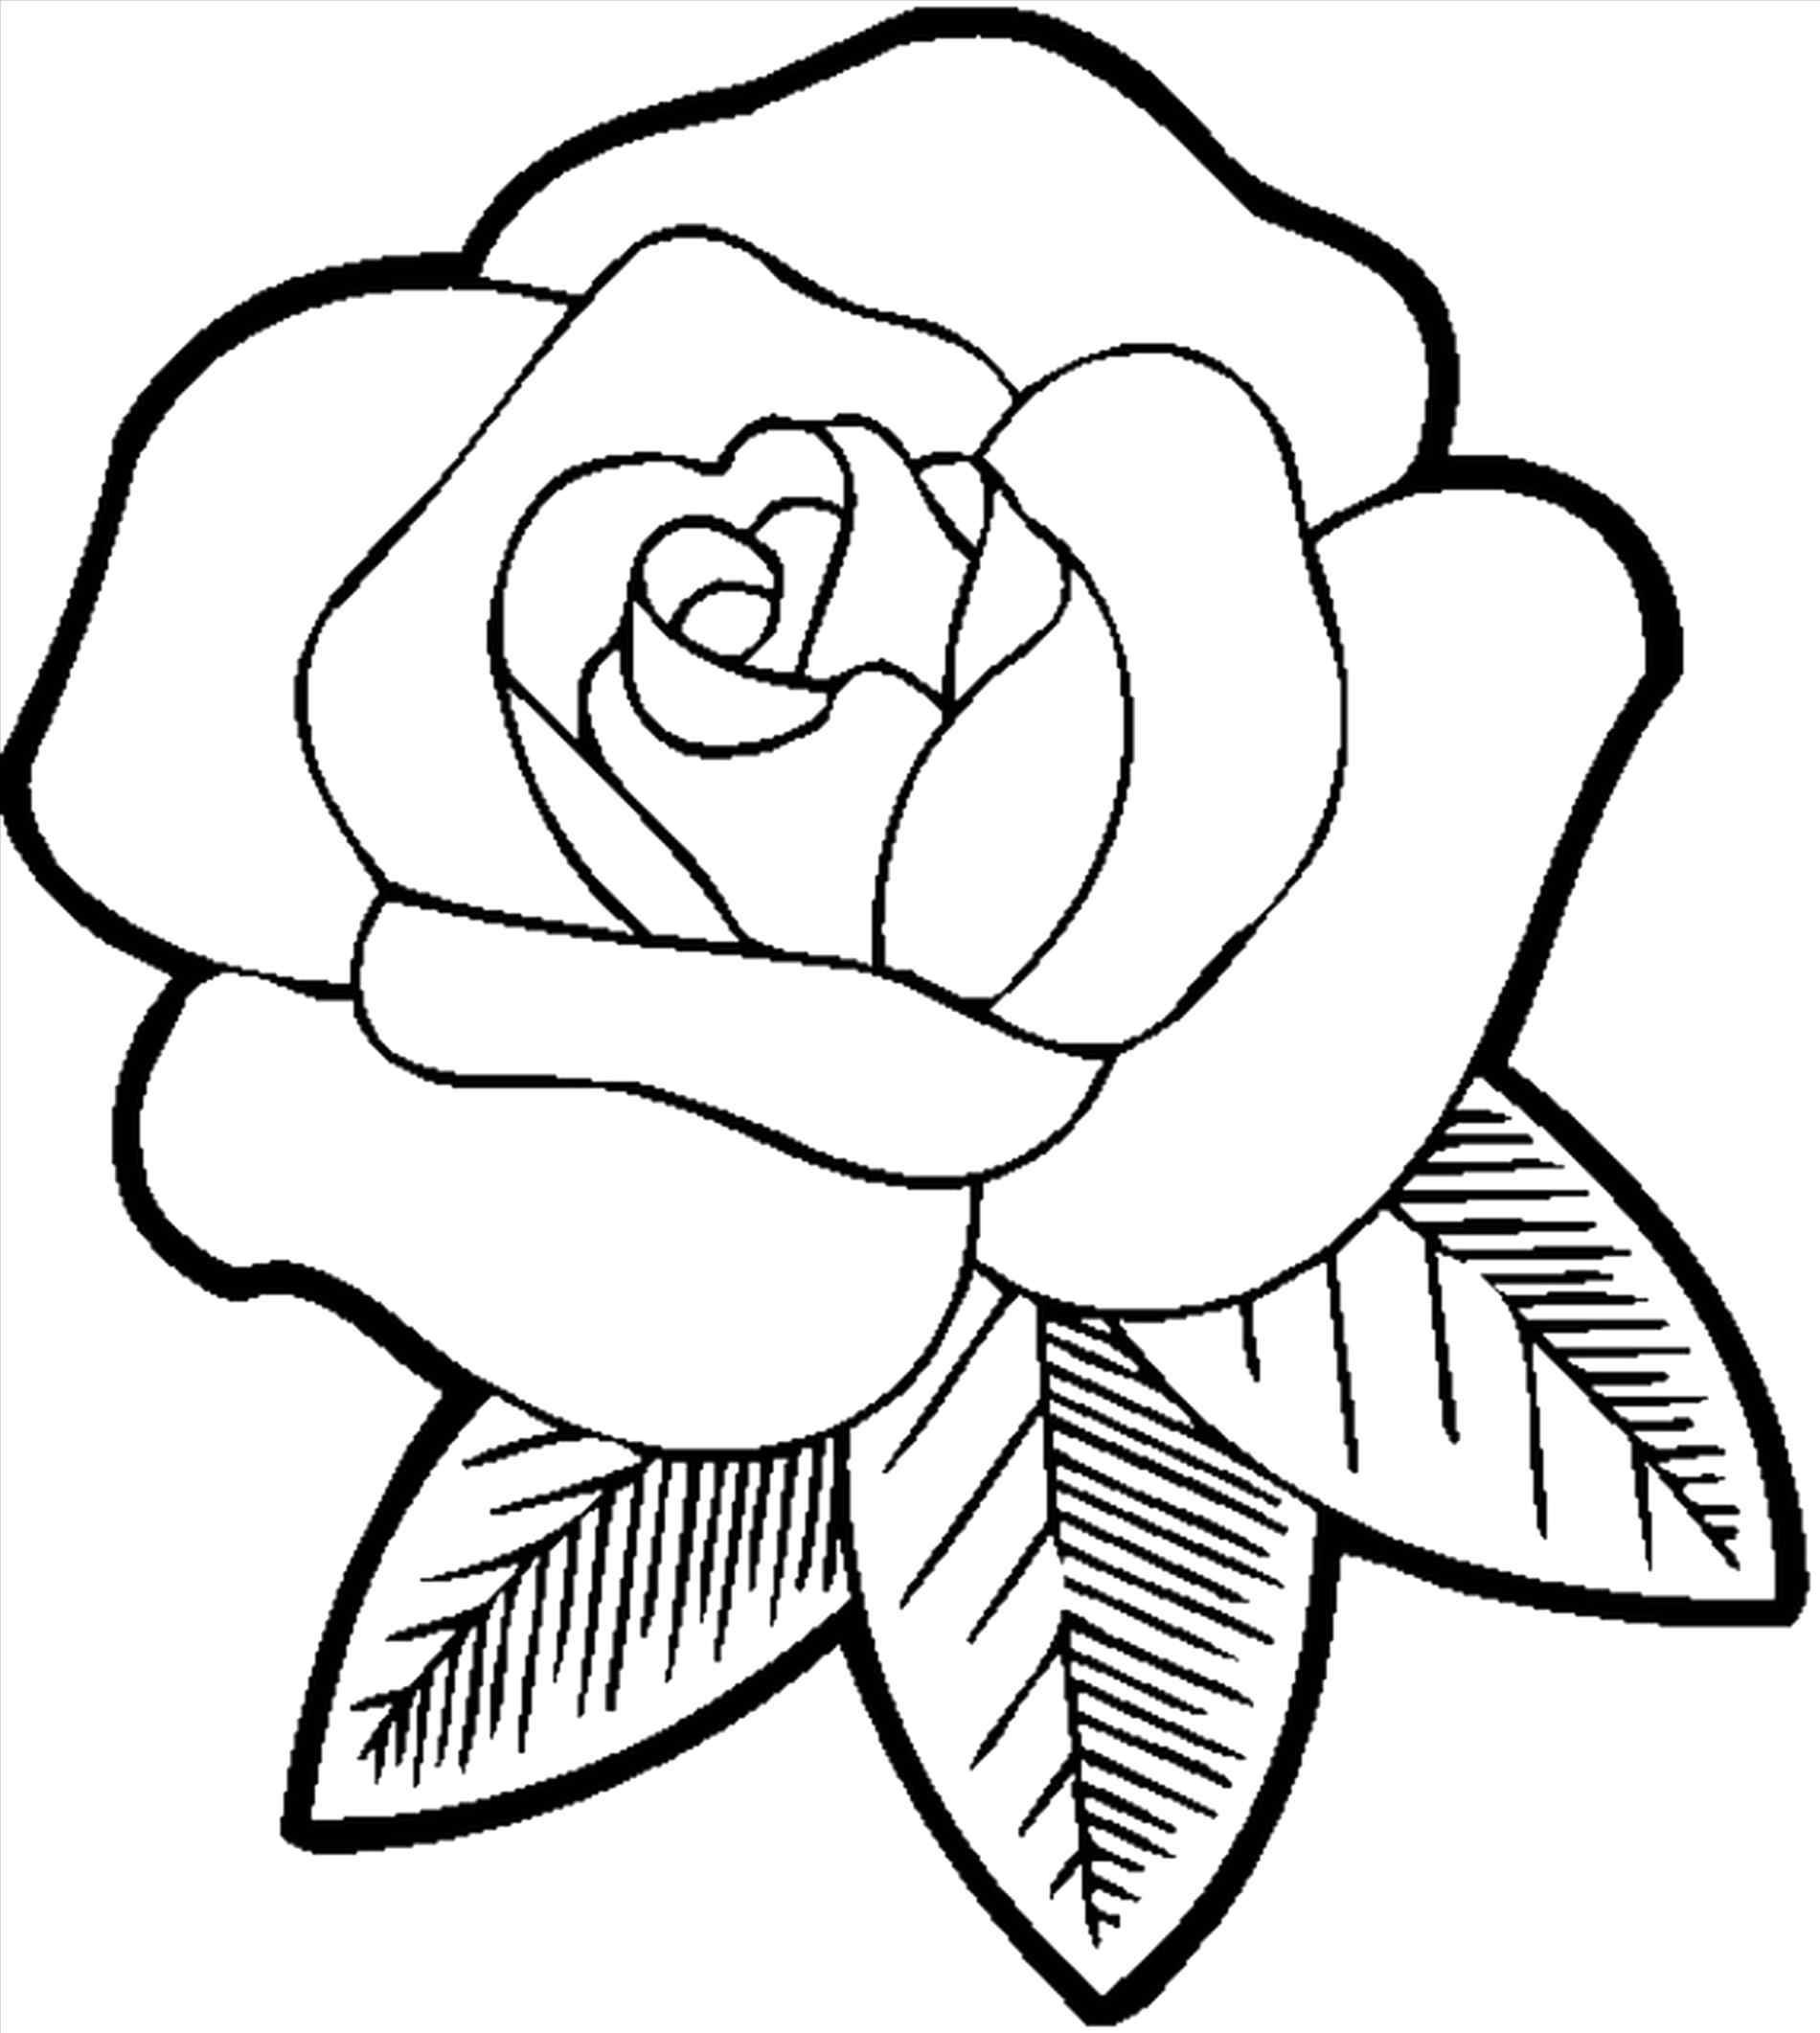 easy cute rose coloring pages cute coloring pages for adults google search rose cute easy rose pages coloring